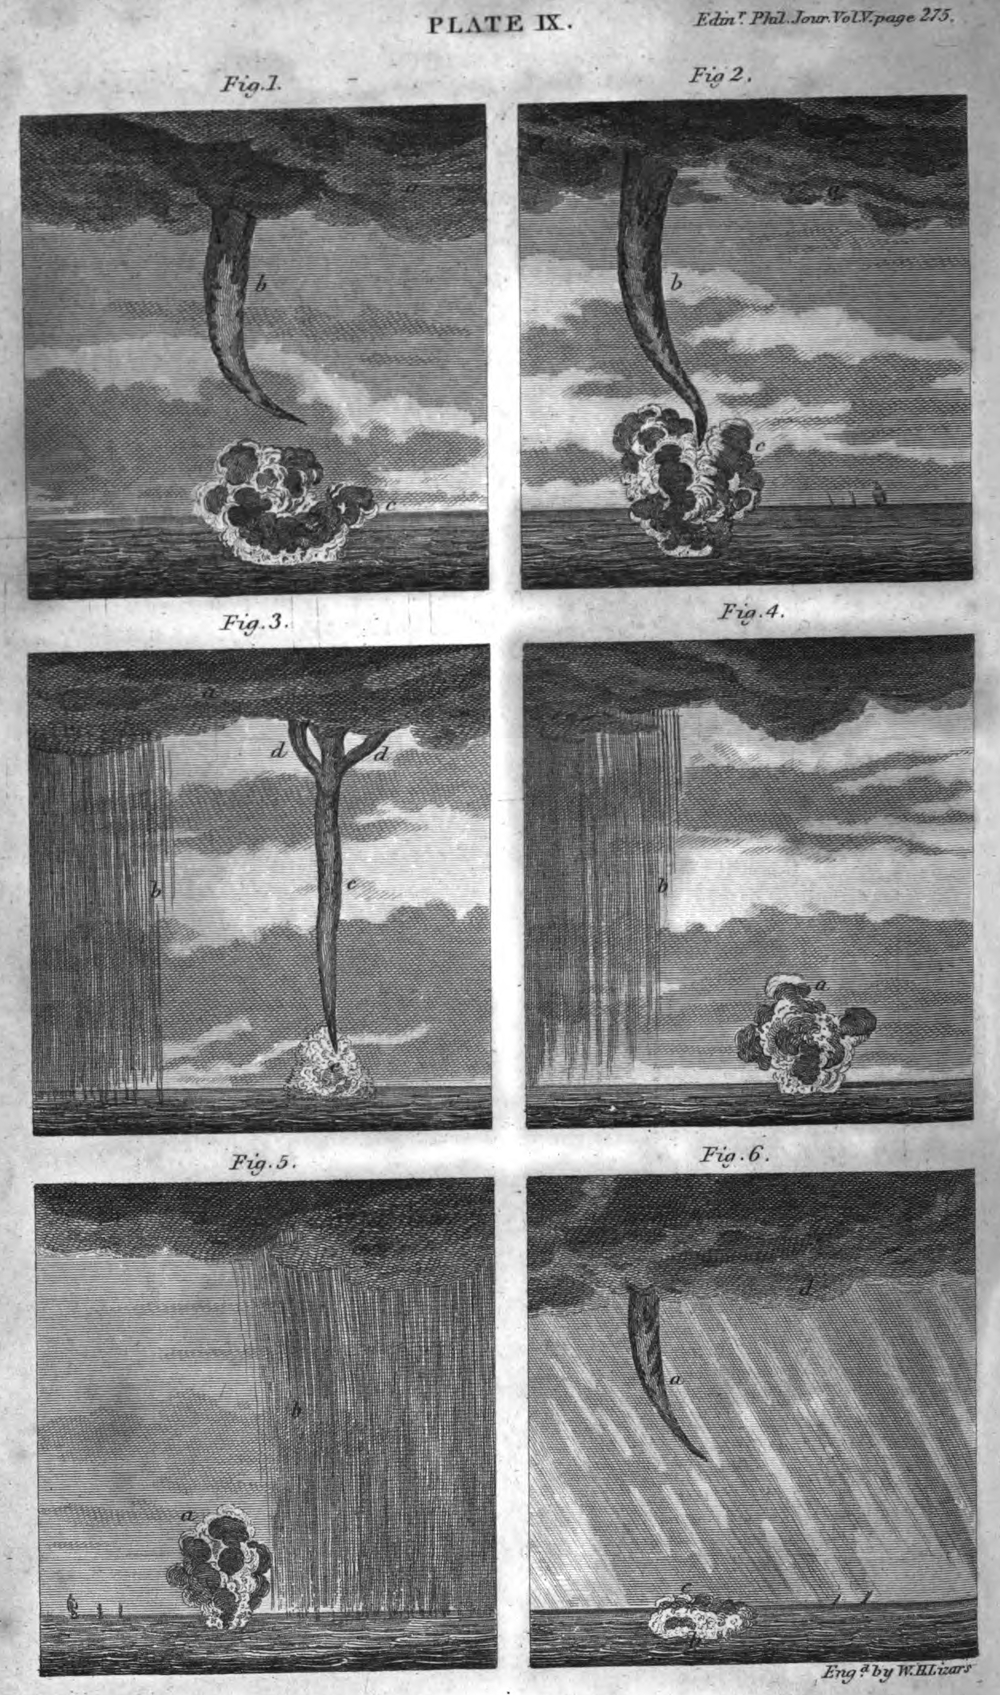 "Waterspouts observed on 24 May 1788 (Figs. 1 and 2), 8 January 1789 (Figs. 3 and 4) and 12 April 1789 (Figs. 5 and 6) by Francis Buchanan (1762–1829) a Scottish physician, geographer, zoologist and botanist, during his voyages to India.  Waterspout on 24 May 1788 ""[...] I observed a curve spout come from the cloud, as shown in Plate IX. Fig. 1. b, the concavity of the curve being windward. At the same time, or at the next moment after observing the spout, I perceived a thick cloud or fog arise from the sea, c. Very soon afterwards, the spout rushed down and joined the cloud, which had risen from the se; and, at the same time, thin rose higher, and contracted its diameter, as in Fig. 2. The water spout being now completely formed, the appearance of it was as follows: The cloud a, from which the spout descended, moved slowly along, and probably, by this means, produced the curvature in the spout. The body of the spout b, tapered gradually downwards,  and was seemingly more dense than the cloud from which it descended, but not more dense or black than cloud often are. The fog coming form the sea was of the same colour as the spout, and resemble the smoke of a steam-engine. During the whole time, the surface of the sea under the spout was evidently in violent agitation, and full of white waves; at the same time noise was heard, like that of an immense waterfall. From the formation of the spout, till the time it reached the cloud arising from the sea, appeared to be about two minutes. The spout then began to withdraw itself into the cloud, from whence it had descended; while the cloud bellow gradually withdrew into the sea; and in about three minutes all was over, and the thick cloud in the sky, in a short time, was entirely dispersed. "" (Buchanan 1821, p. 275– 276). Waterspout on 8 January 1789 ""[...] at half-part eight in the morning, we observed like a thick cloud resting on the sea, Fig. 4. a, and bearing from us from W. by N. from four to six miles distance. [...] To the southward of it was a heavy rain, b. [...] A spout then came down from the cloud in the form of an elbow; but before he gave me notice, the spout had disappeared, and nothing remained except the cloud on the water. About half an hour afterwards I was informed, that the spout has returned. Upon coming on deck, I observed the cloud Fig. 3. a, and the rain b as before; and a new spout was then formed, where the former has been. The spout c was cylindrical, and slightly bent by the wind to the north. Below it terminated in a point about 300 feet from the sea; above it was suspended from the cloud, but became rather narrower, having sent off two branches d, d. It was every where of a define form, and much of the same density with the cloud. In looking at it with a glass, I at first took it to be hollow; but I soon discovered, that this was owing to the middle appearing lighter than the sides, as it must do from the known laws of optics. From the sea arose a circumscribed conical cloud e, nearly of the same density with the spout. After continuing about then minutes by a watch, the spout and both clouds became gradually lighter coloured, till they entirely disappeared."" (Buchanan 1821, p. 277).  source: Buchanan, F., 1821: Account of Water-Spouts observed at Sea on Voyages to and from India. The Endinburgh Philosophical Journal, 5, 275–279. (courtesy of Google books)."